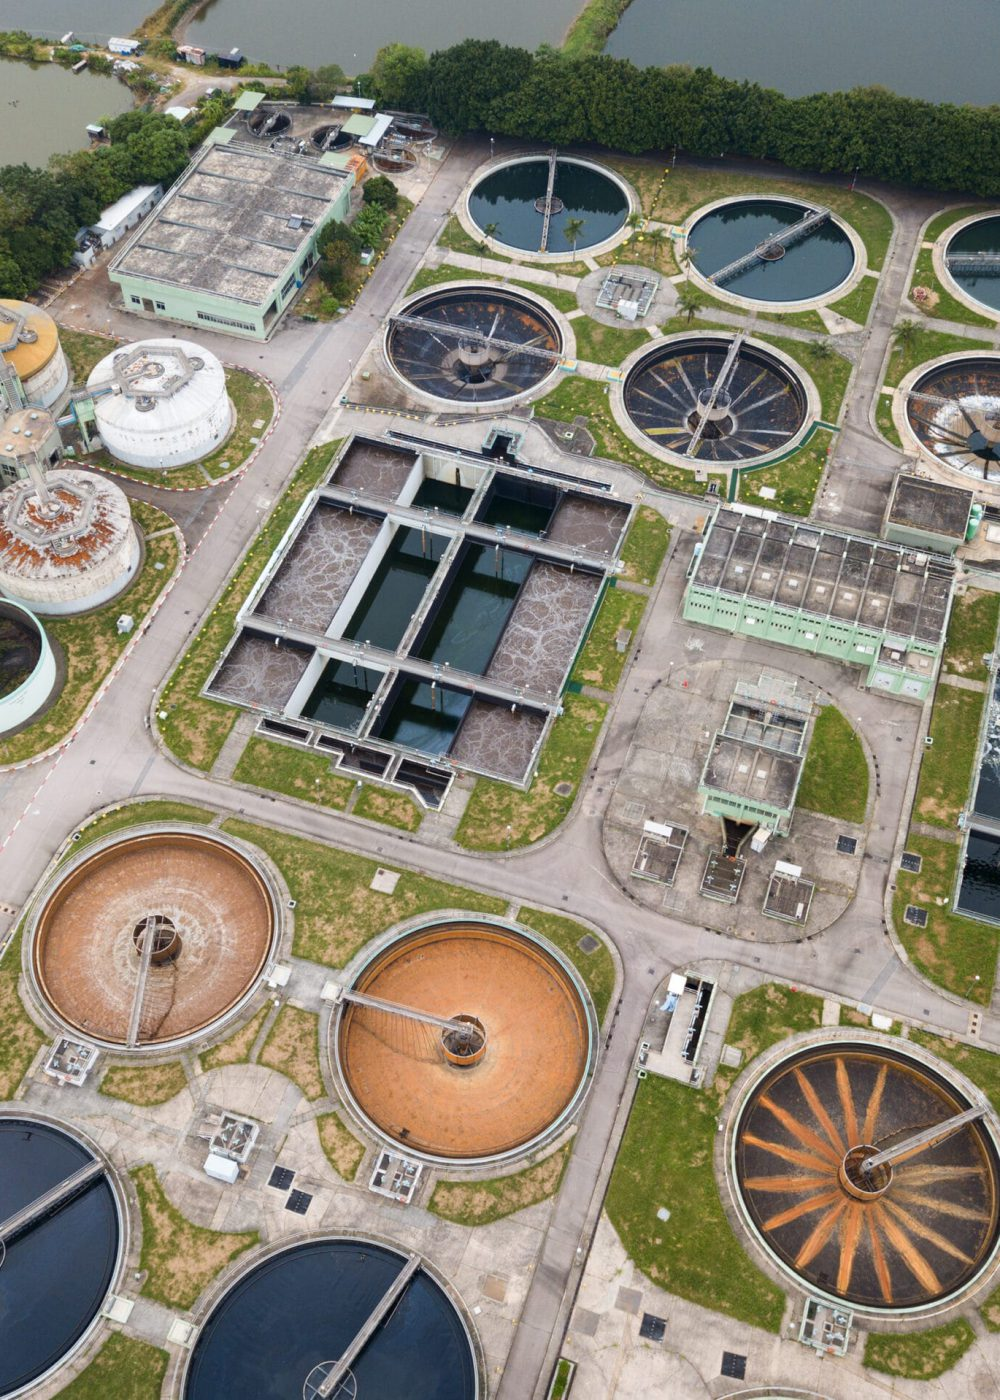 Sewage treatment plant in hong Kong